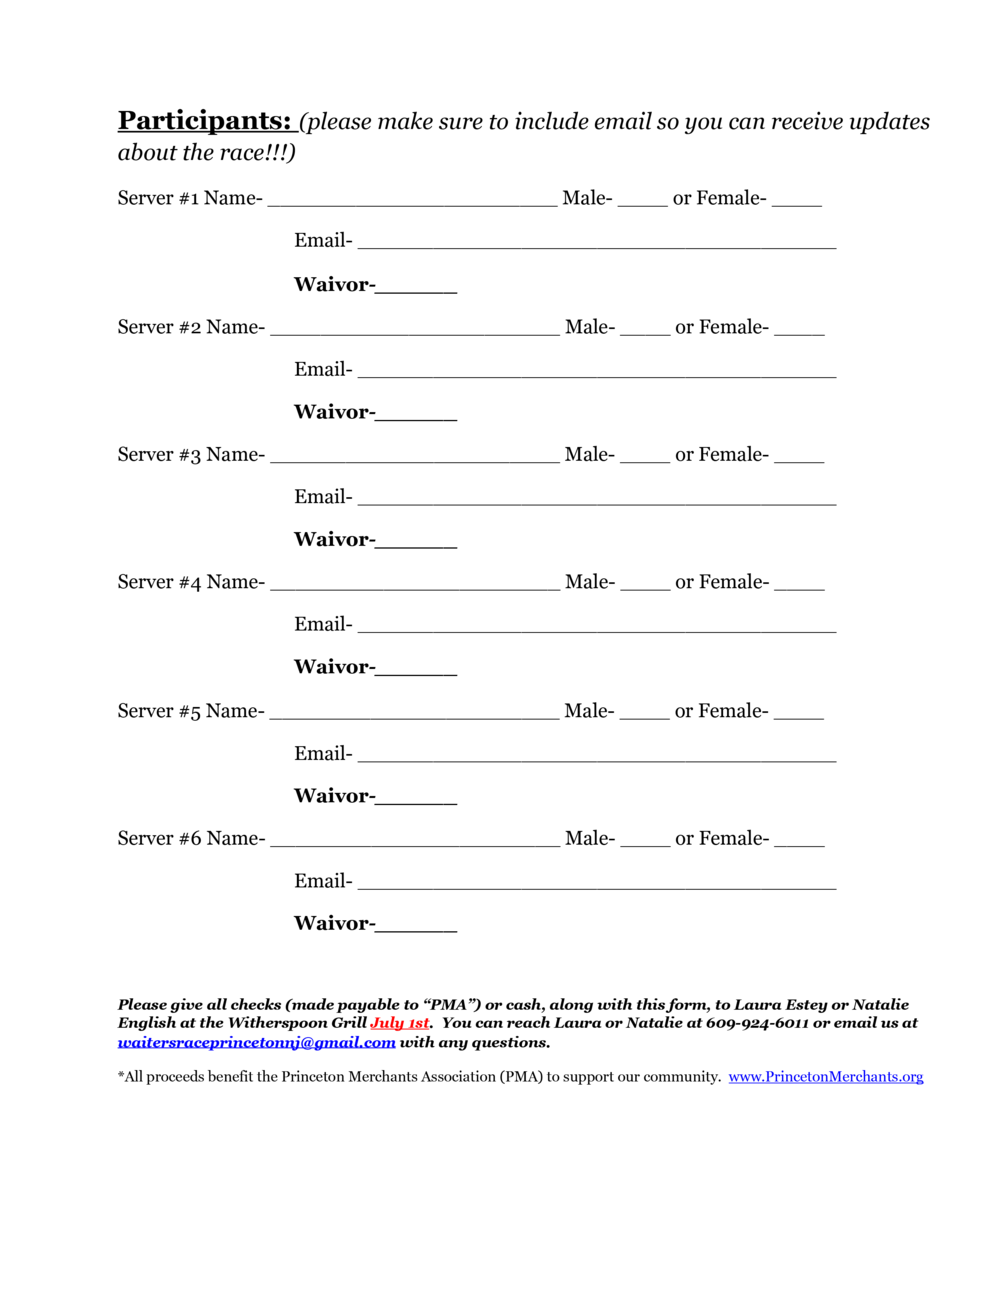 Racer Registration Form, page 2